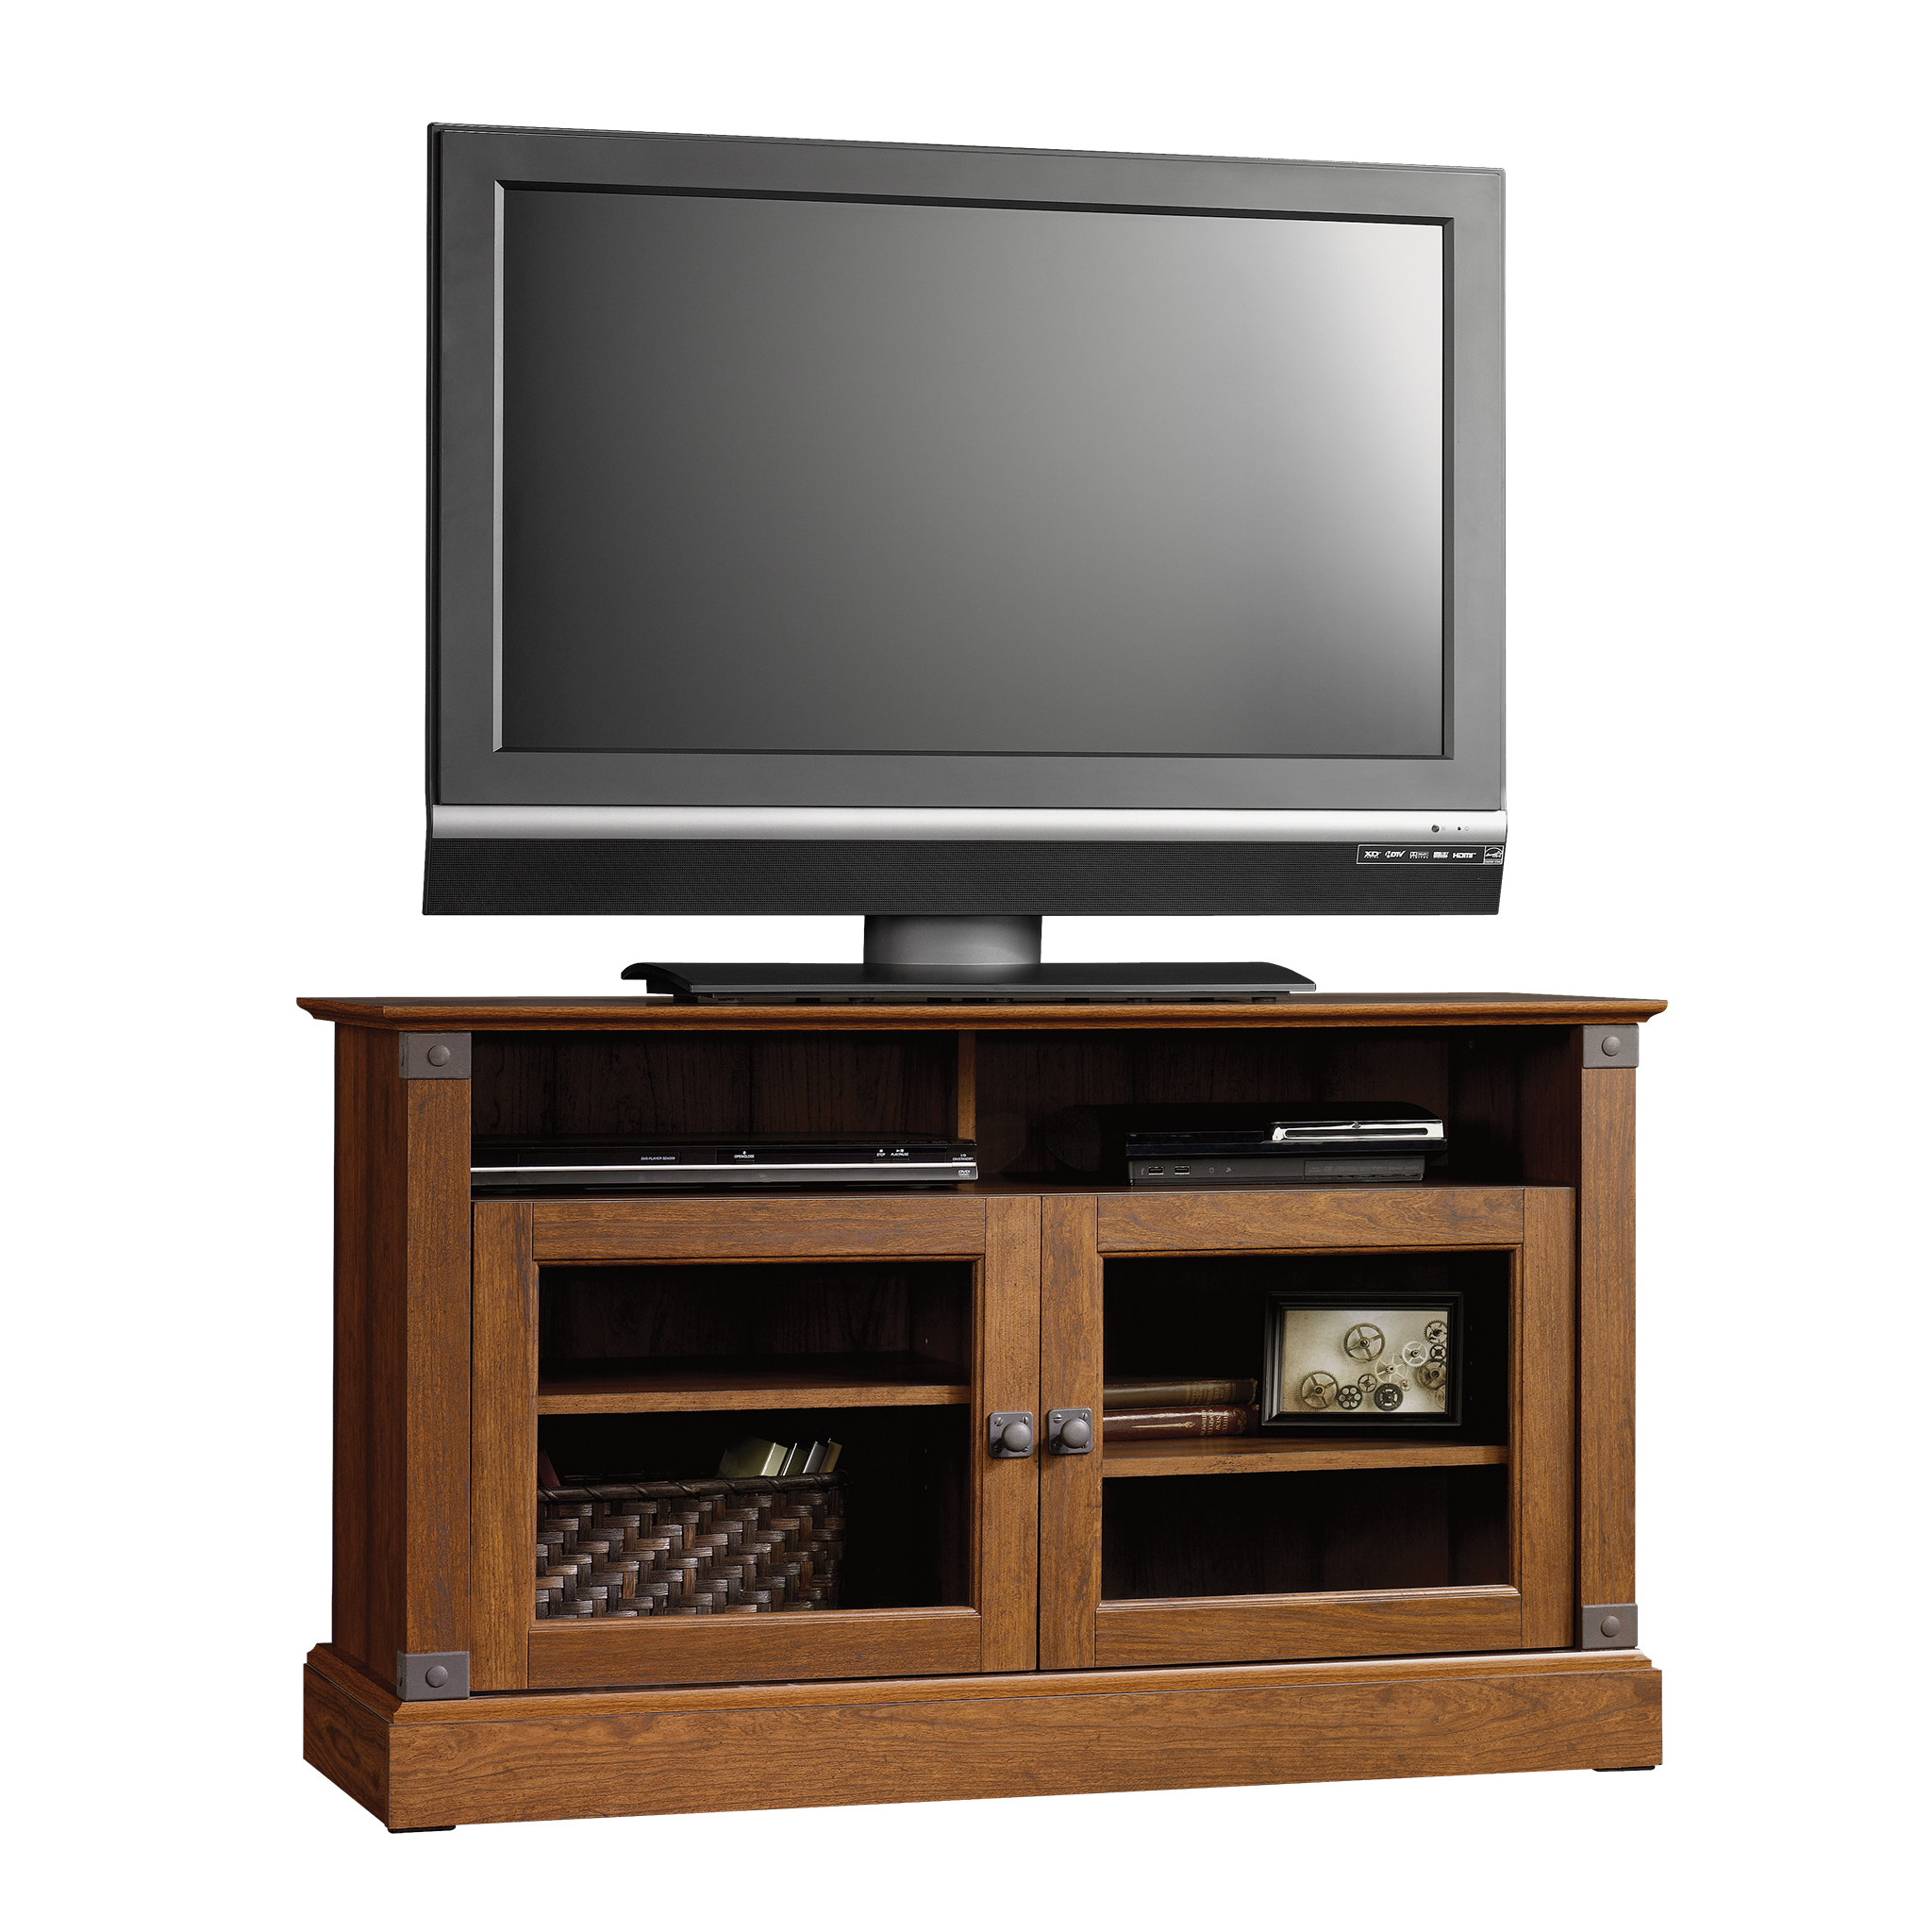 "Sauder Carson Forge Panel TV Stand for TVs up to 47"", Washington Cherry Finish"